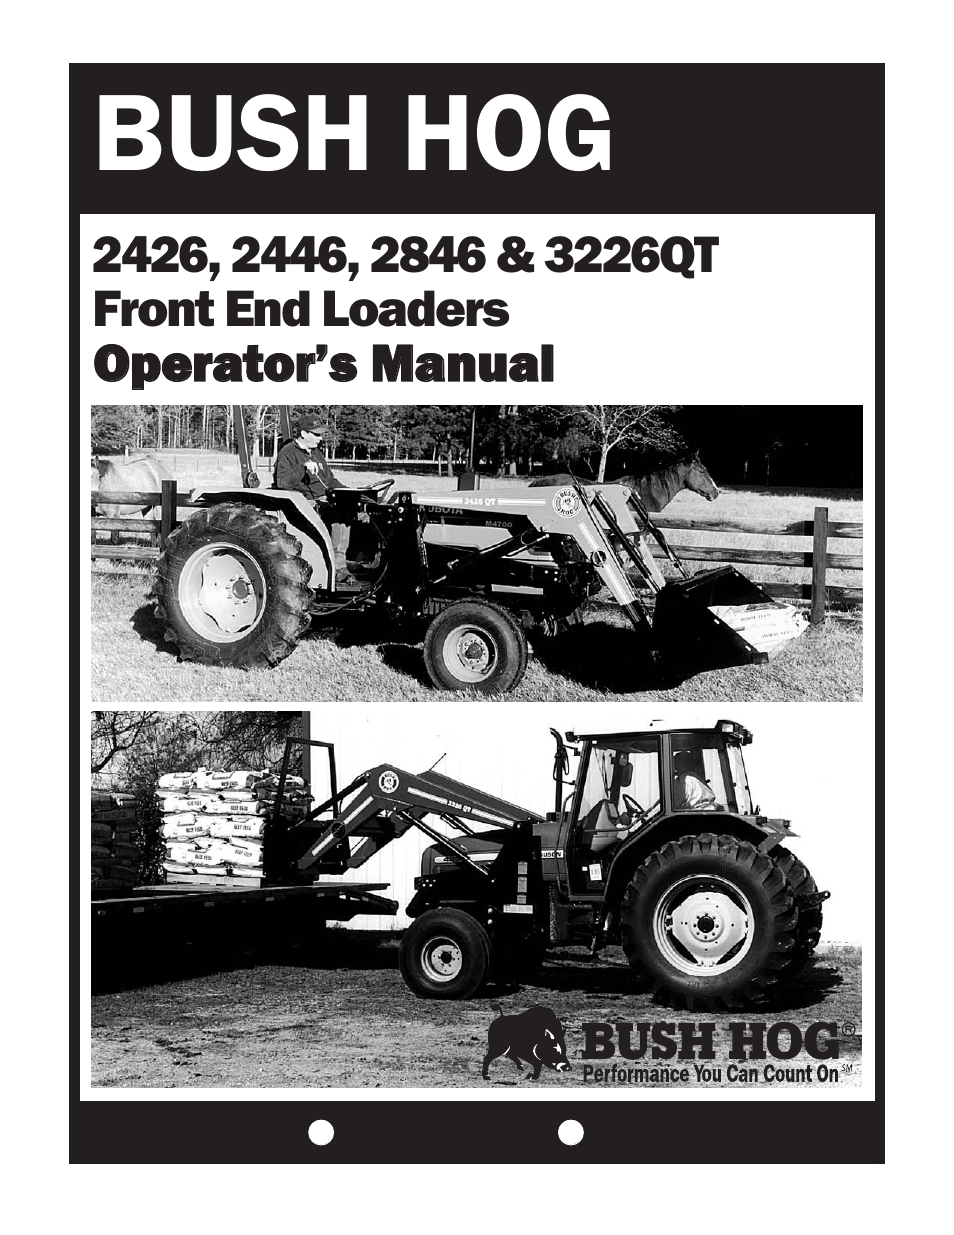 Bush Hog 2846 User Manual | 33 pages | Also for: 2426, 2446